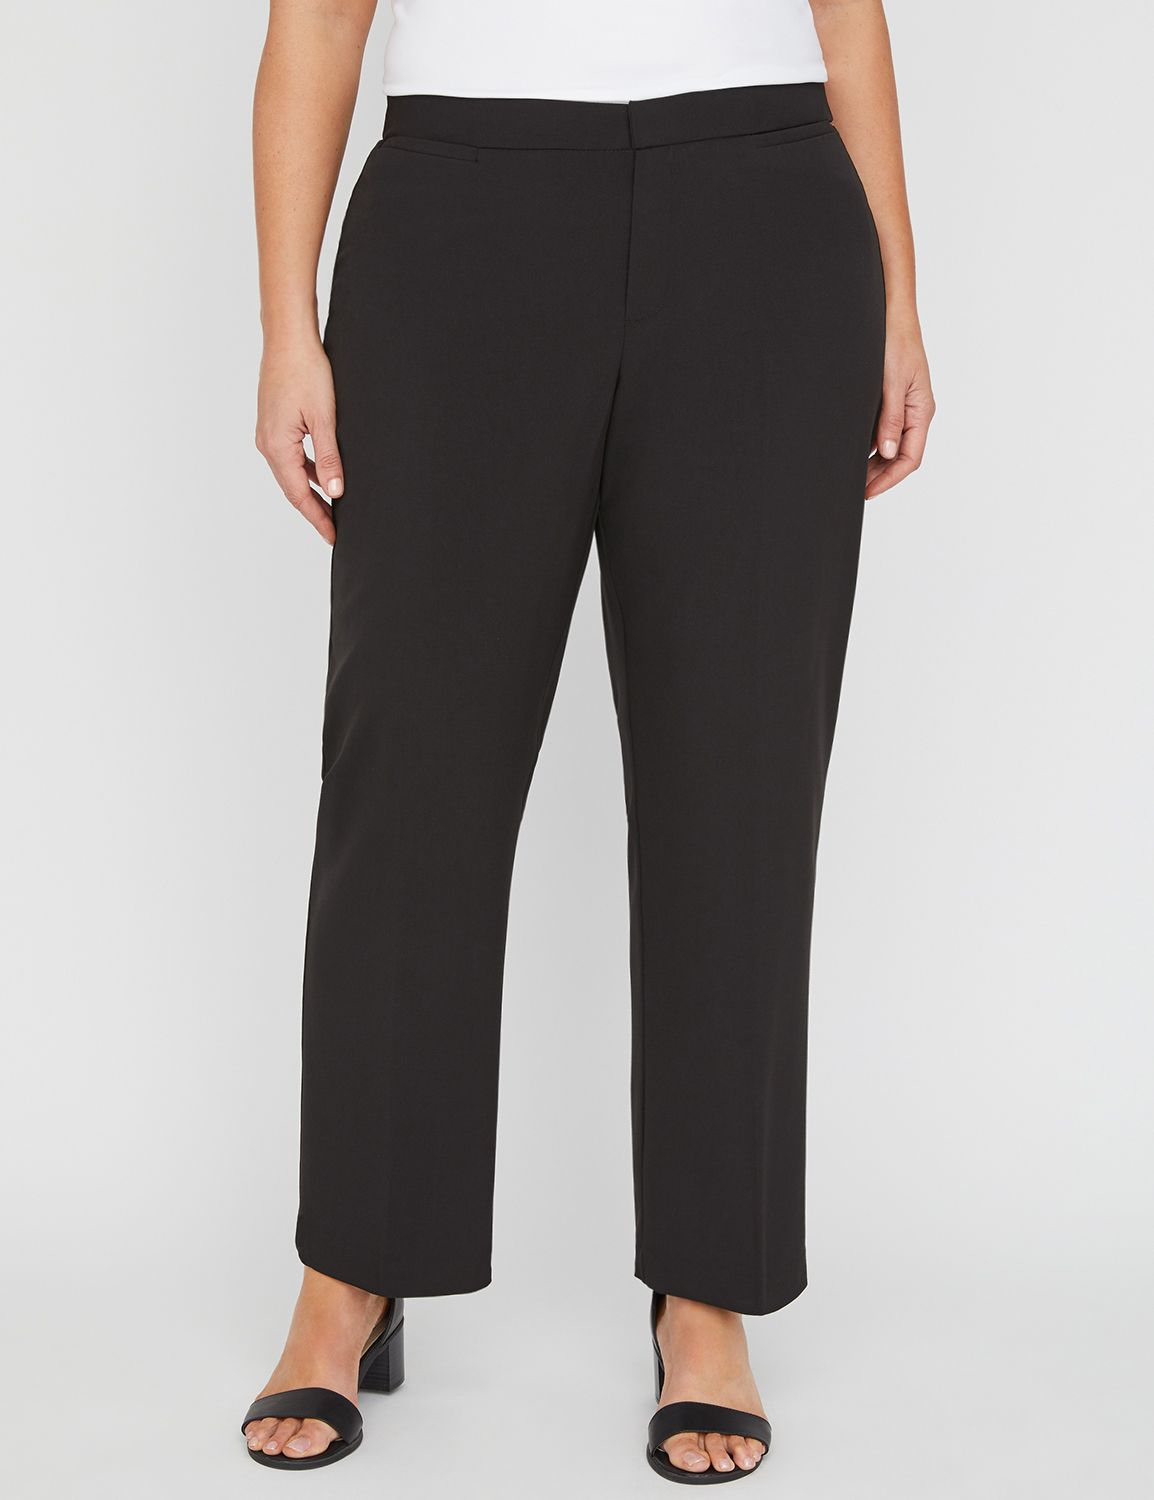 Right Fit Pant (Moderately Curvy) Right Fit Pant (Moderately Curvy) MP-300009878